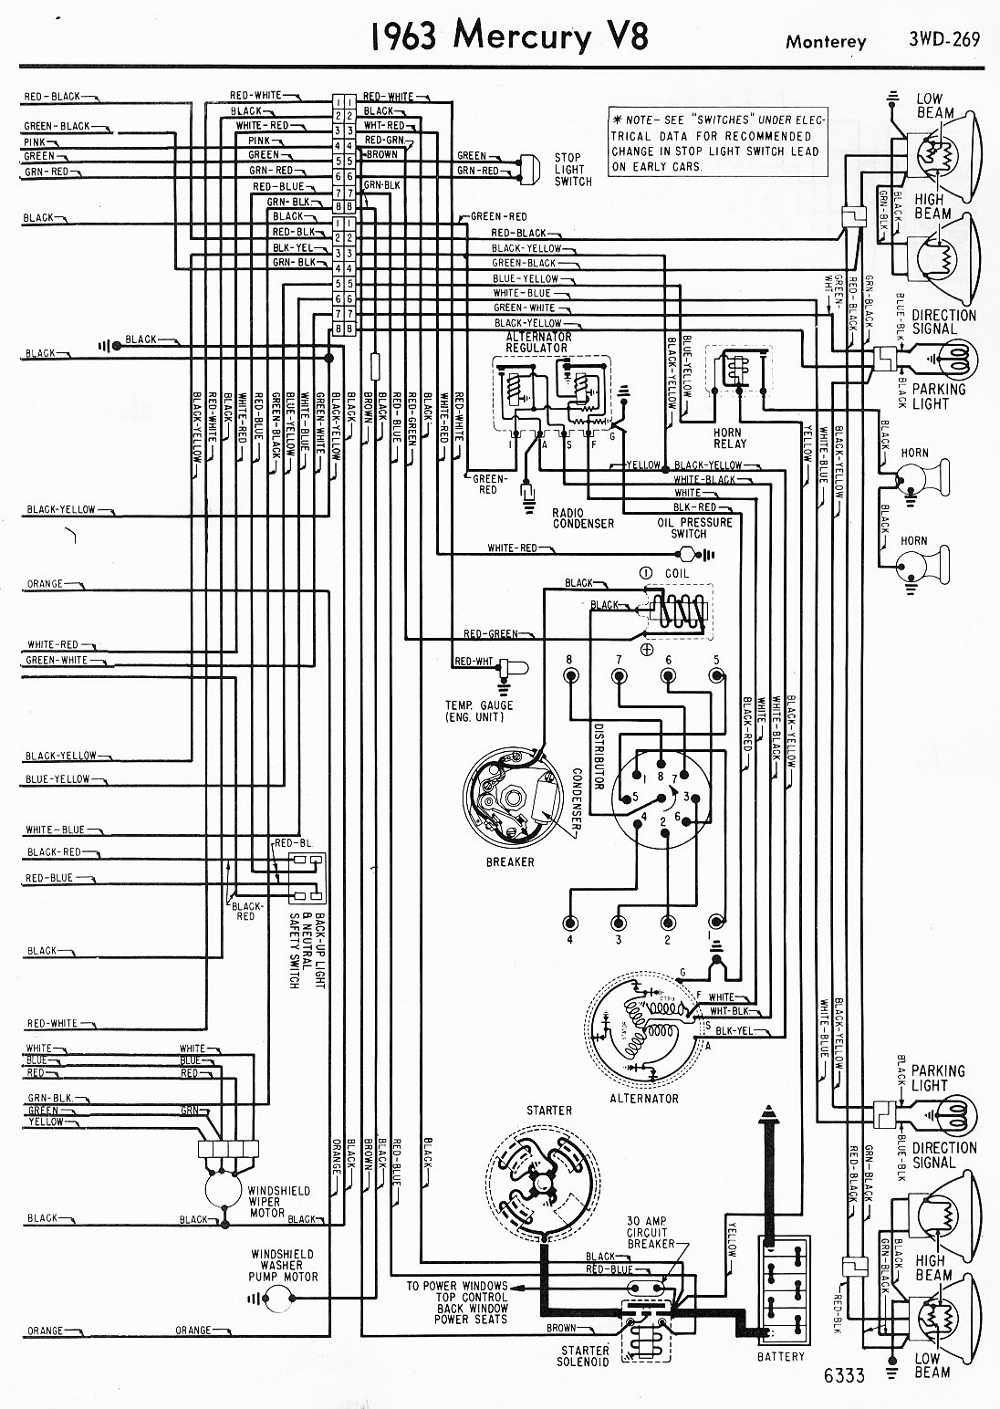 1967 Cougar Wiring Harness Get Free Image About Diagram 67 Schematic Mercury Monterey